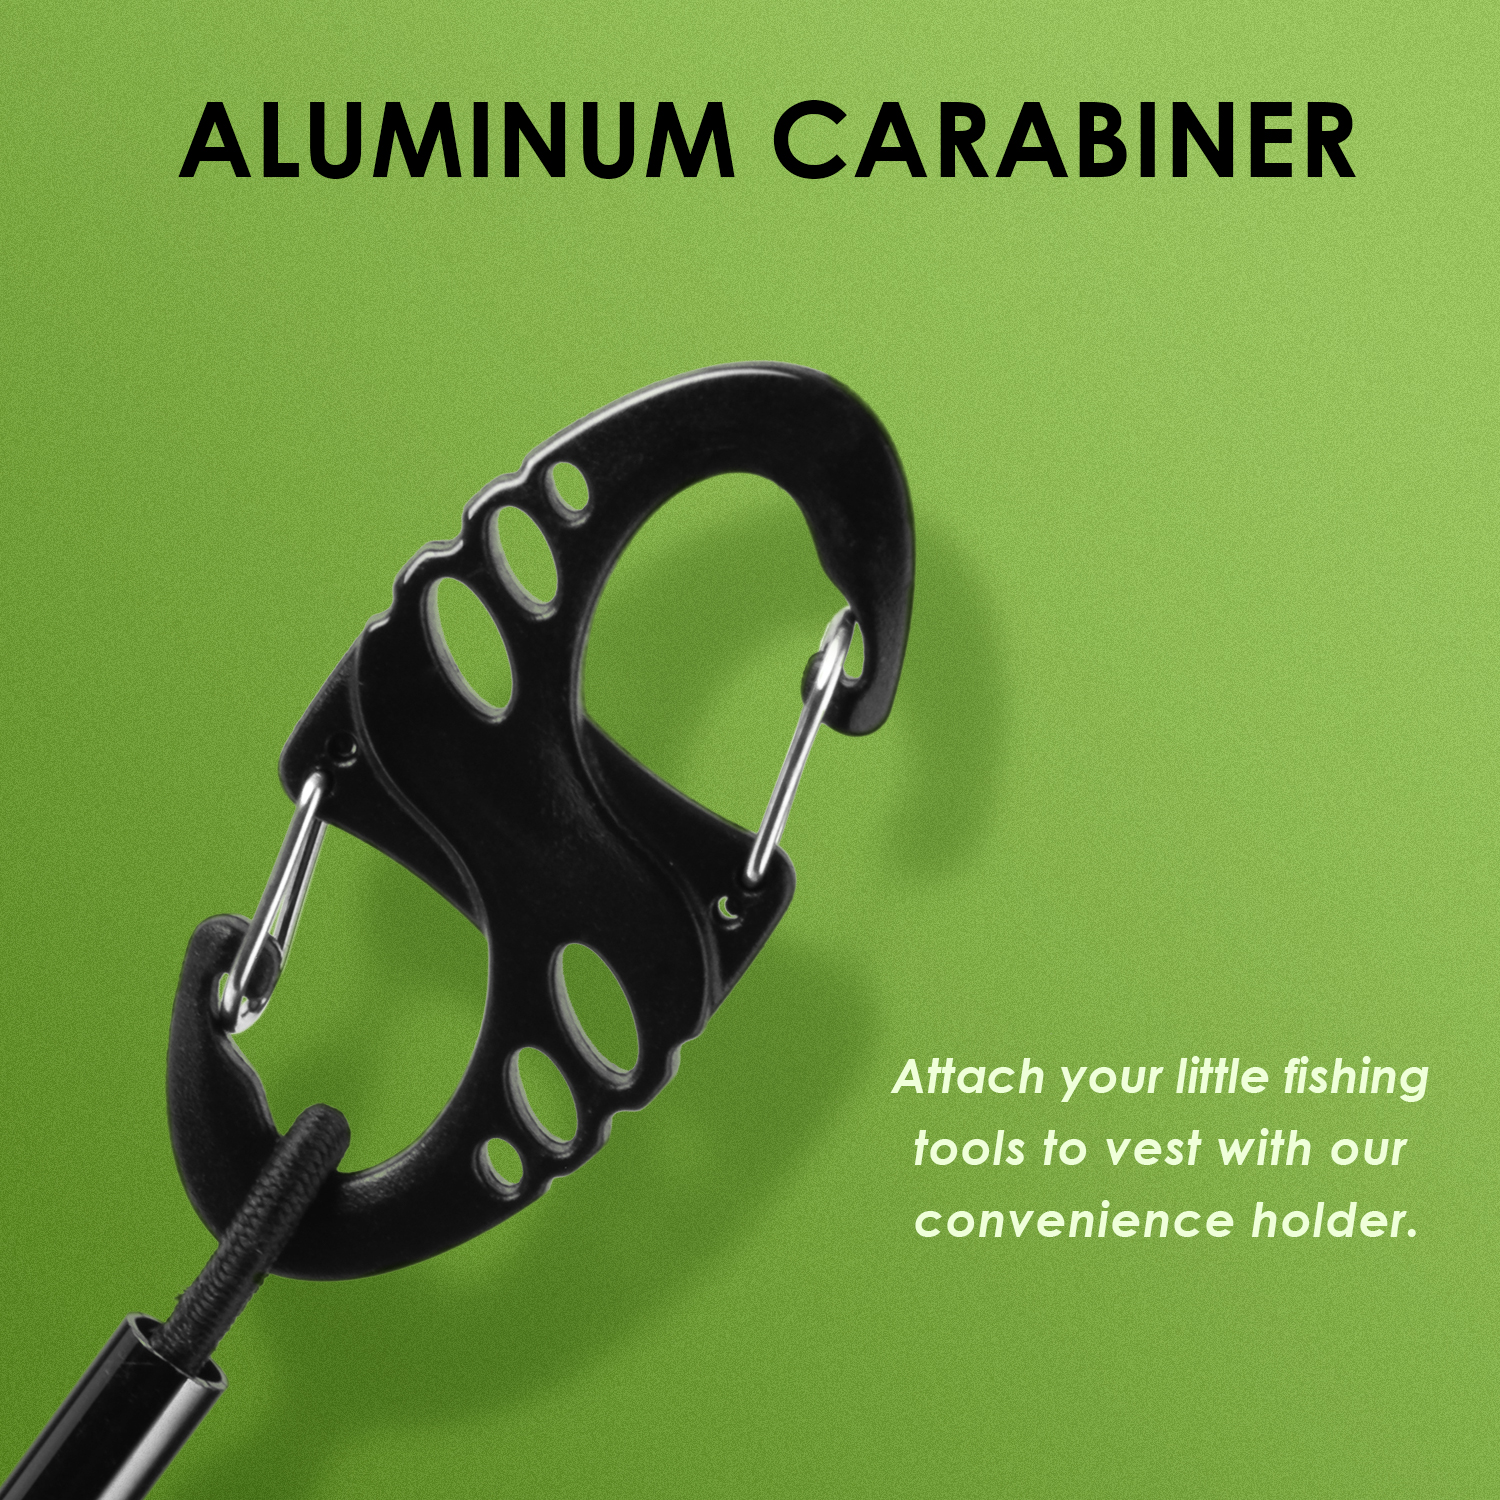 Black Tippet T Spool Holder Fly Fishing Tippet Holder with Carabiner